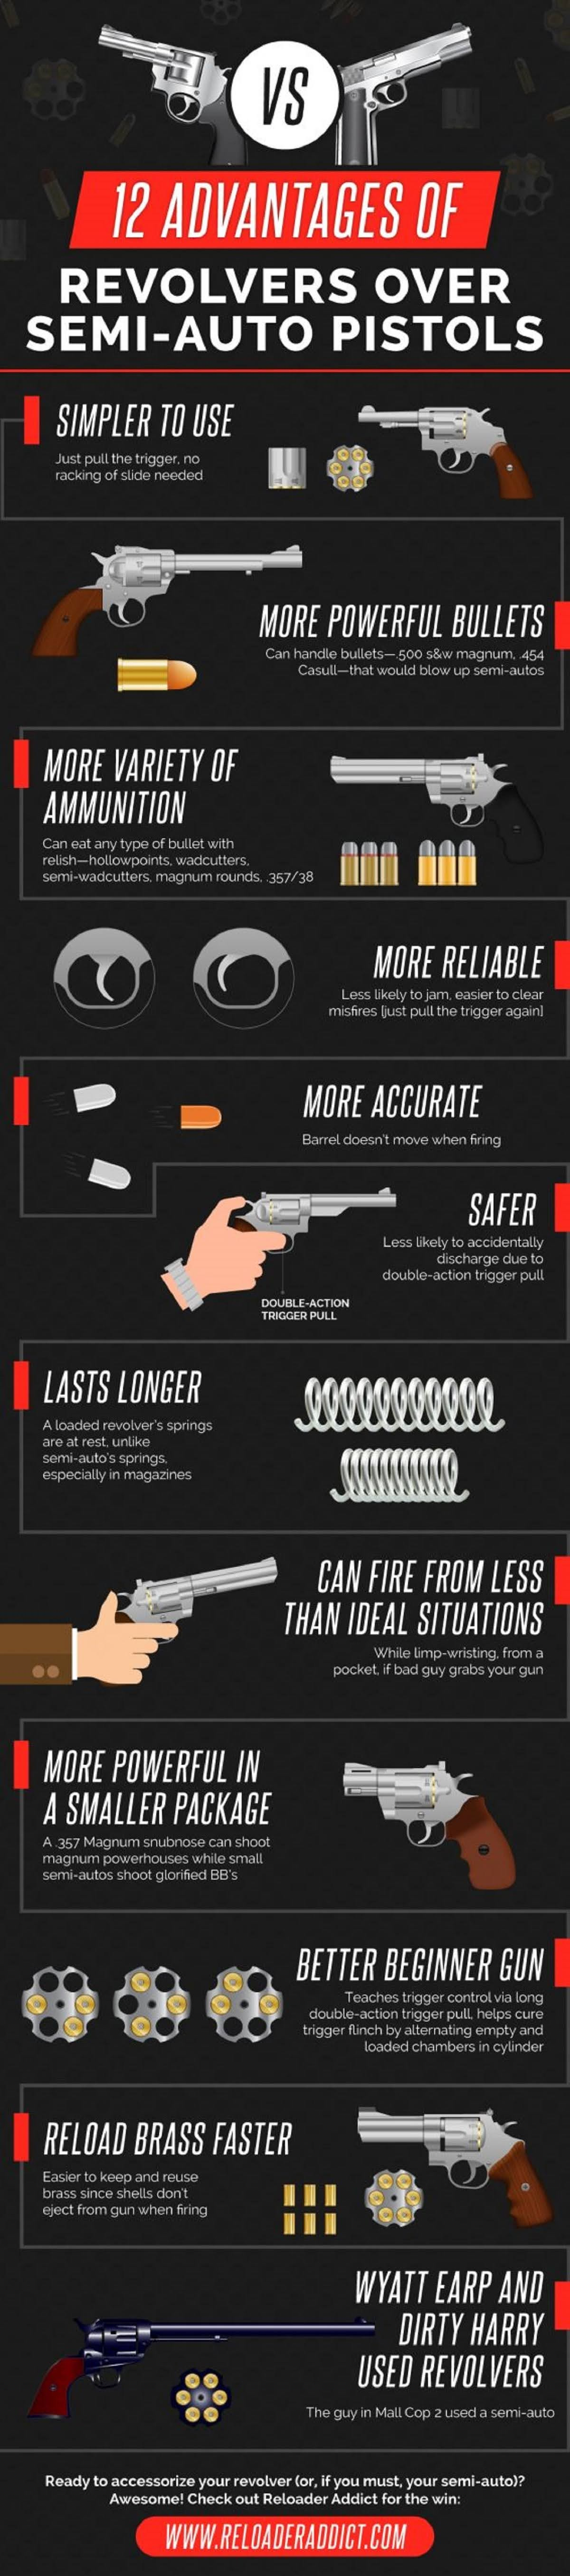 10-reasons-why-revolvers-still-rule-infographic